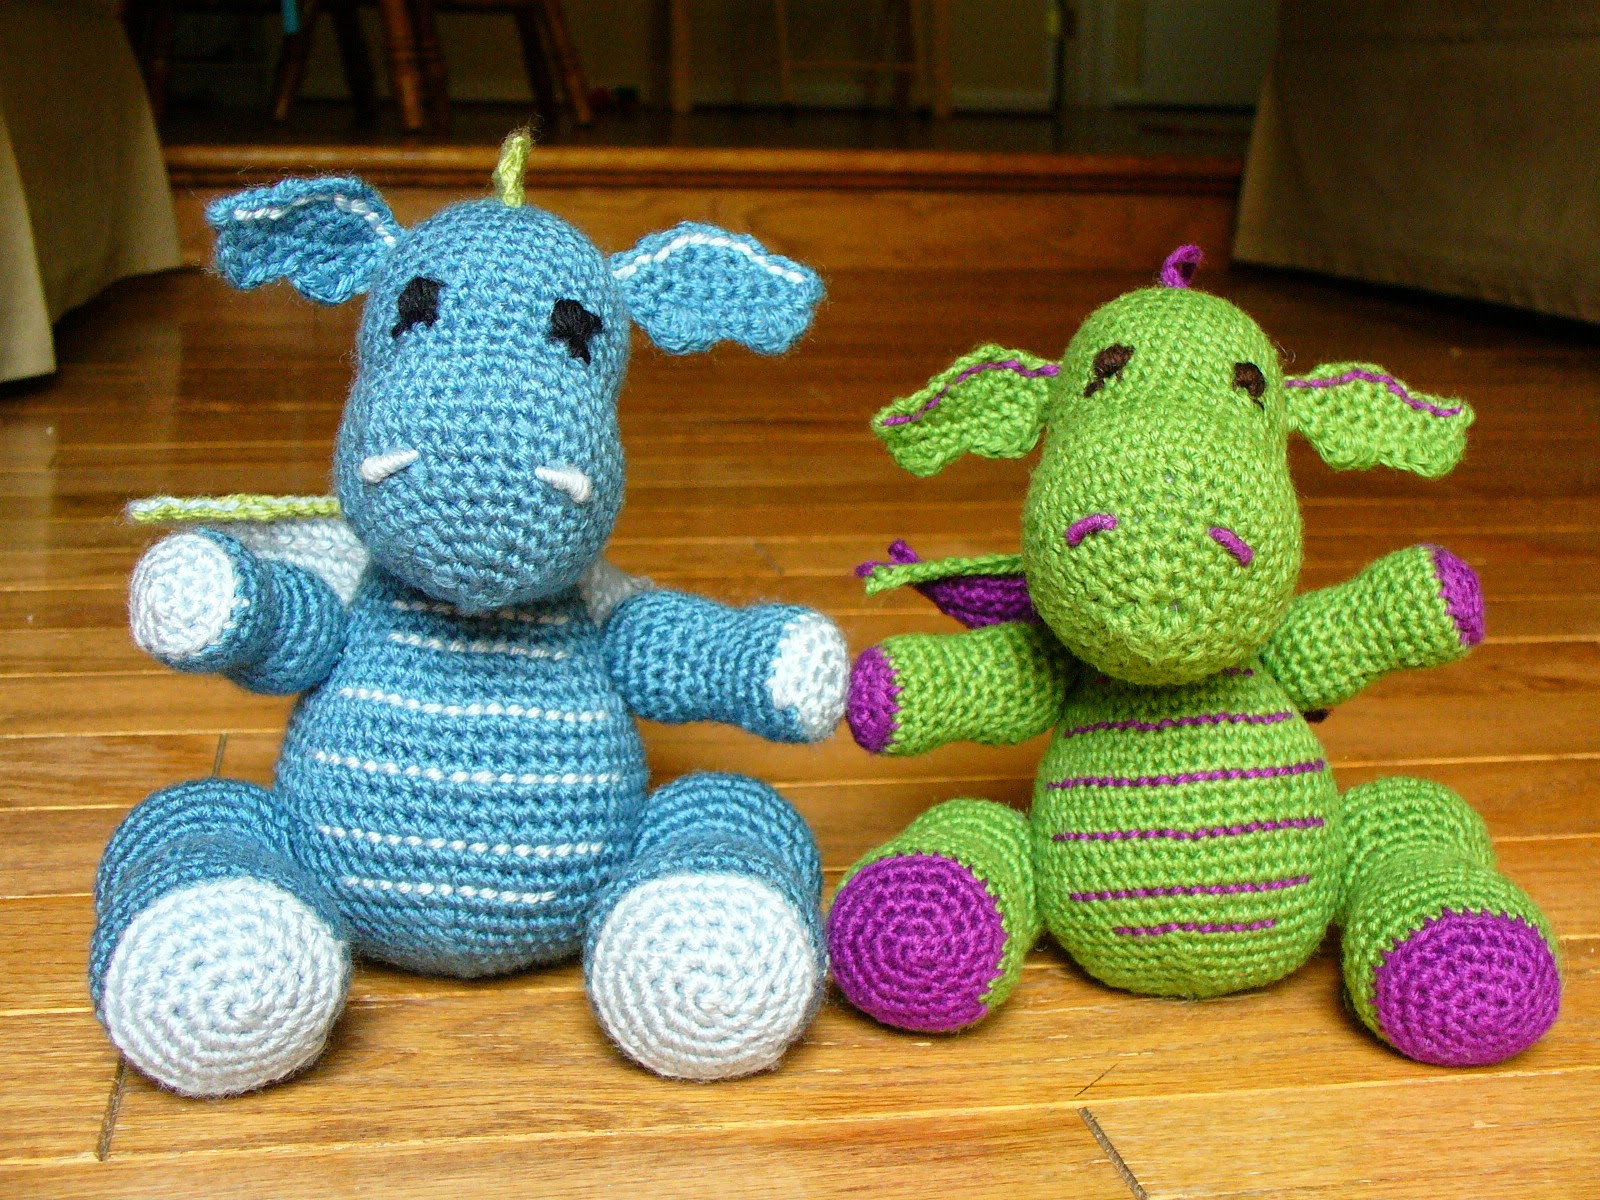 New Dragons Amigurumi Crochet Pattern ⋆ Crochet Kingdom Crochet Dragon Pattern Of Brilliant 50 Pictures Crochet Dragon Pattern